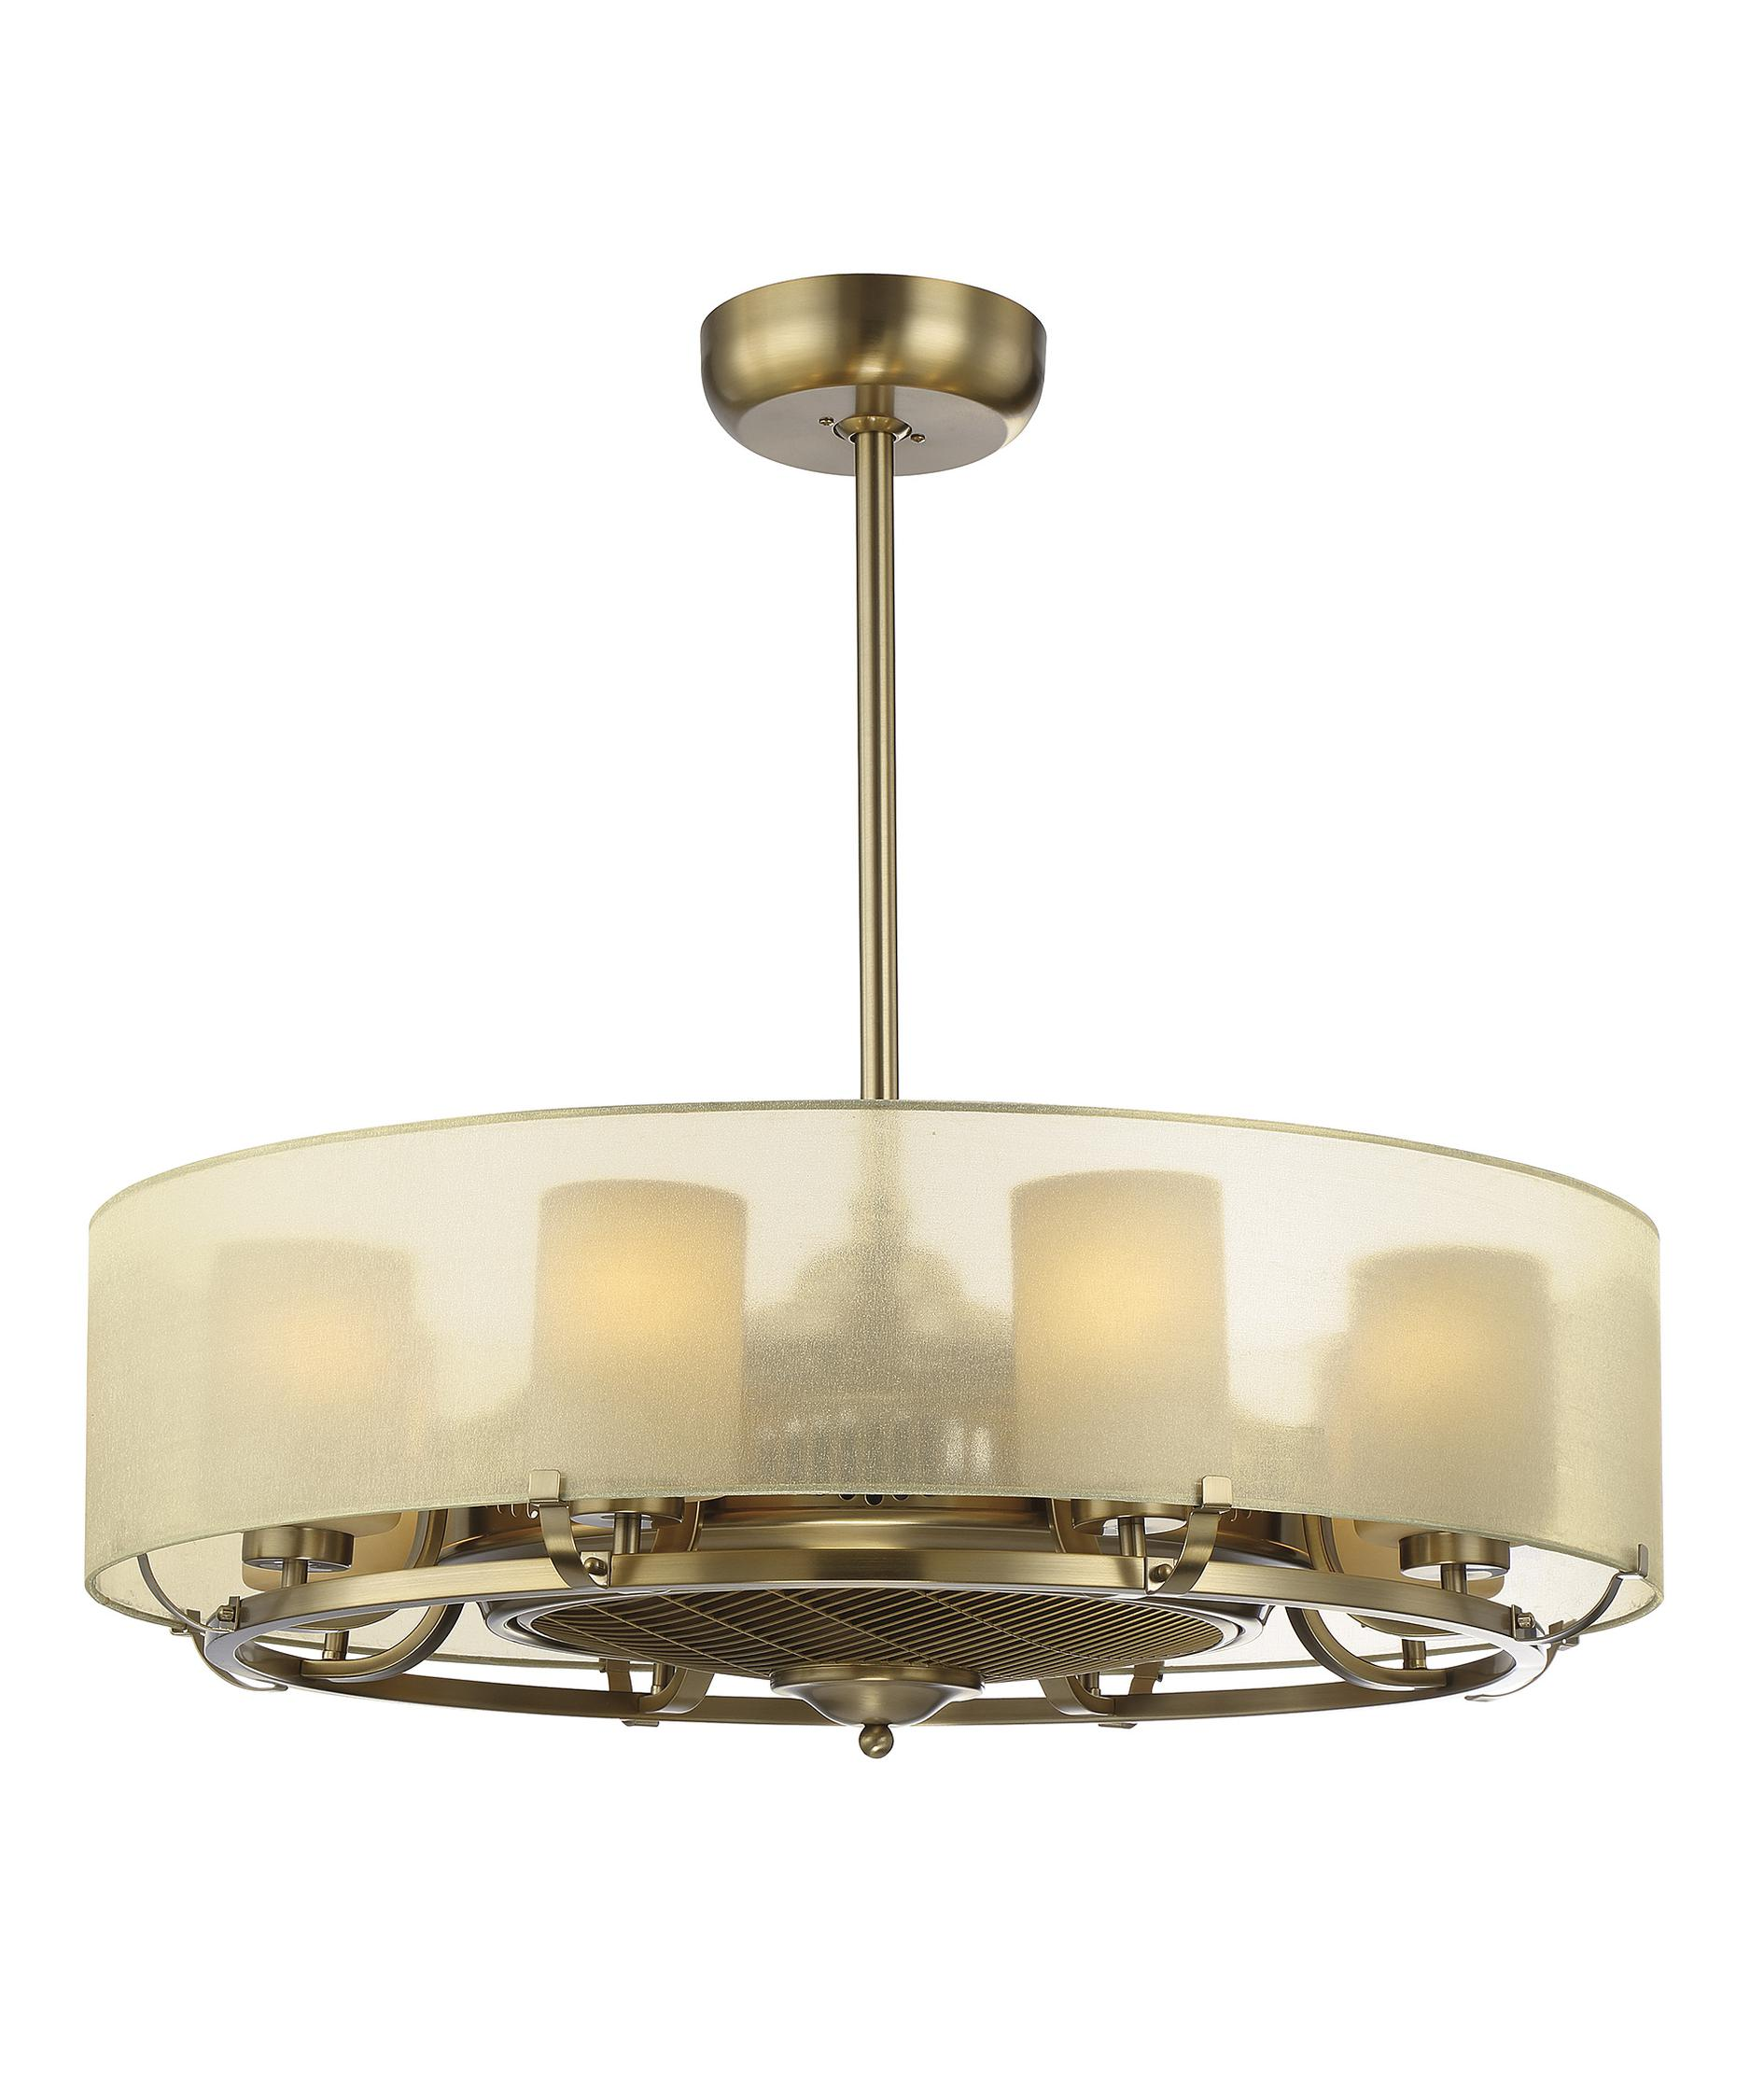 Savoy House Vinton 32 Inch Chandelier Ceiling Fan | Capitol ...:Savoy House Vinton 32 Inch Chandelier Ceiling Fan | Capitol Lighting  1-800lighting.com,Lighting